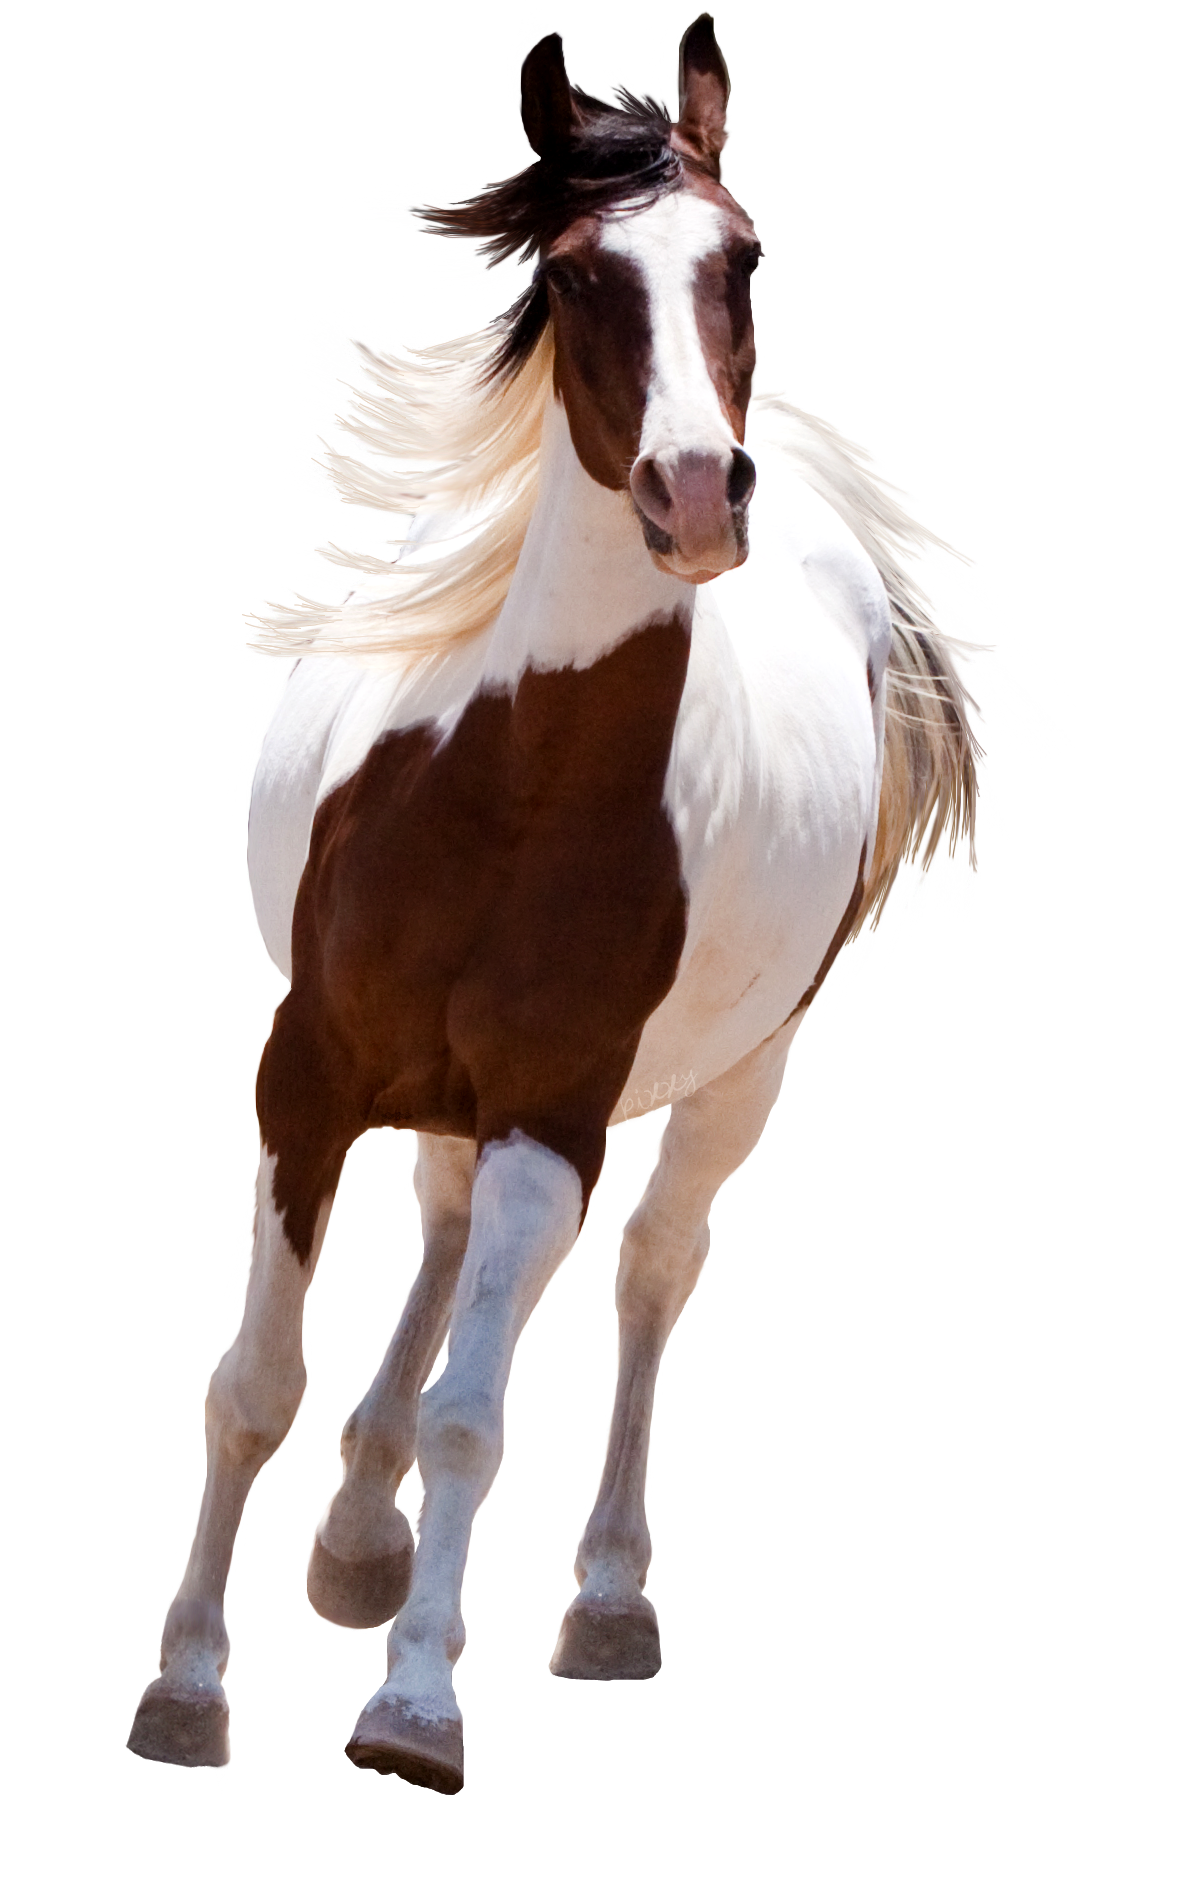 Running horse png - Horse HD PNG - PNG HD Horse